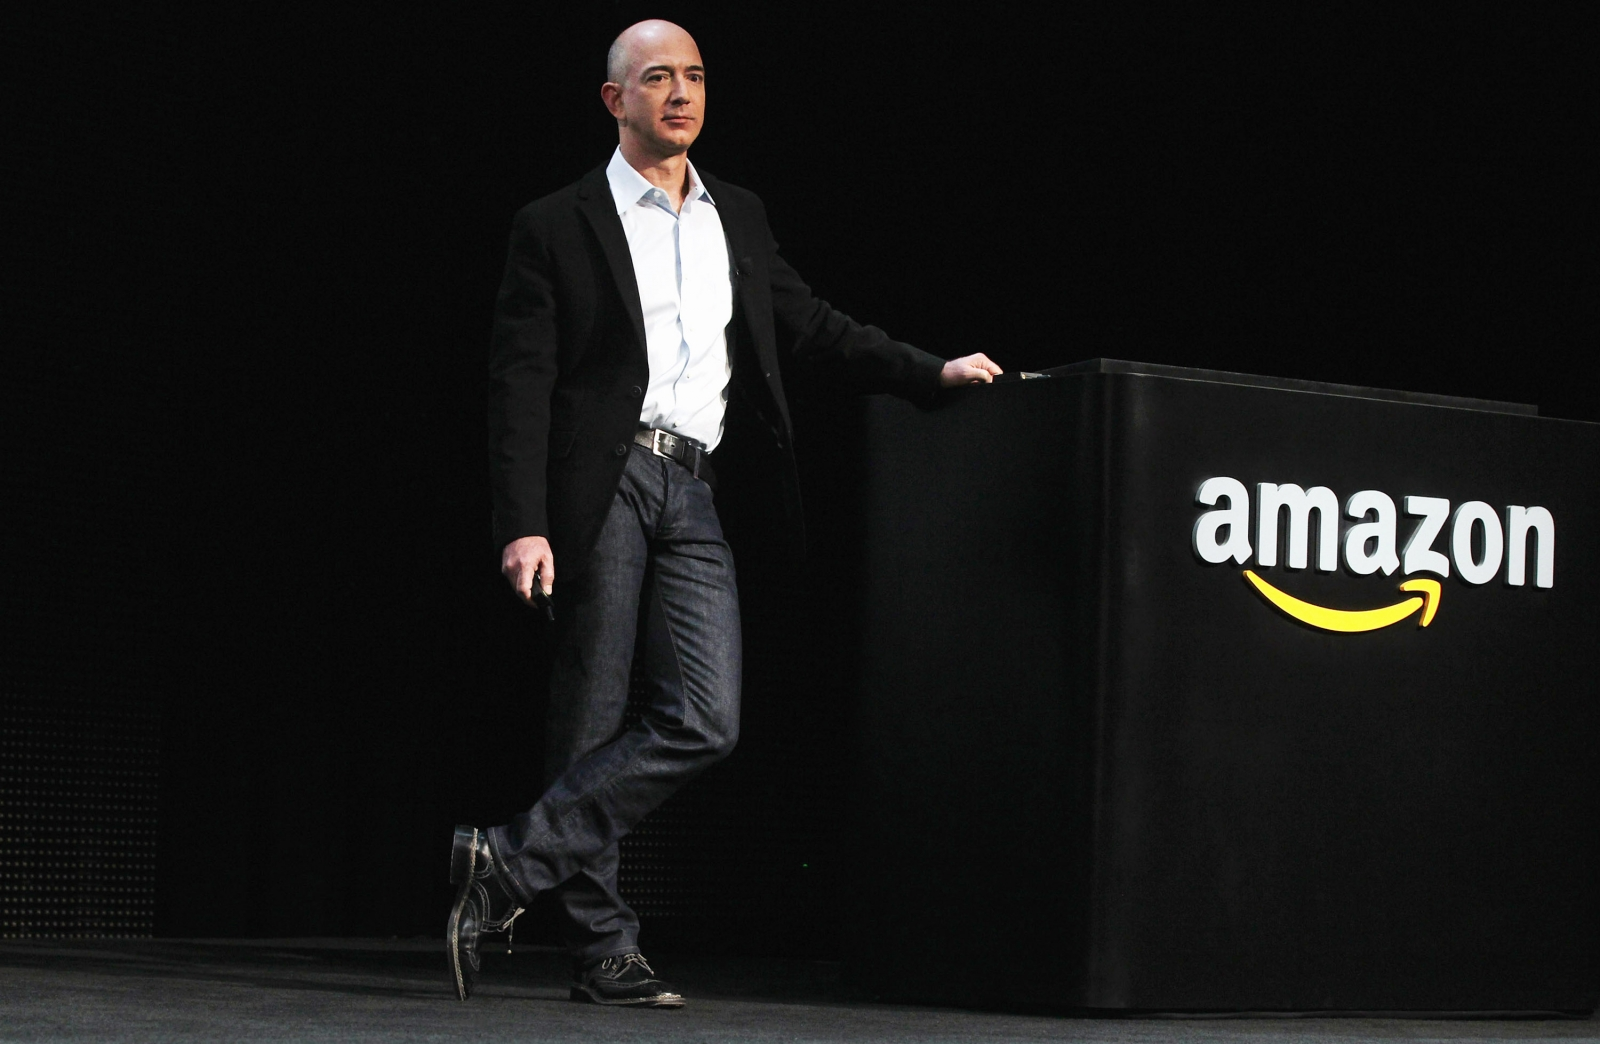 Jeff Bezos world's third richest person